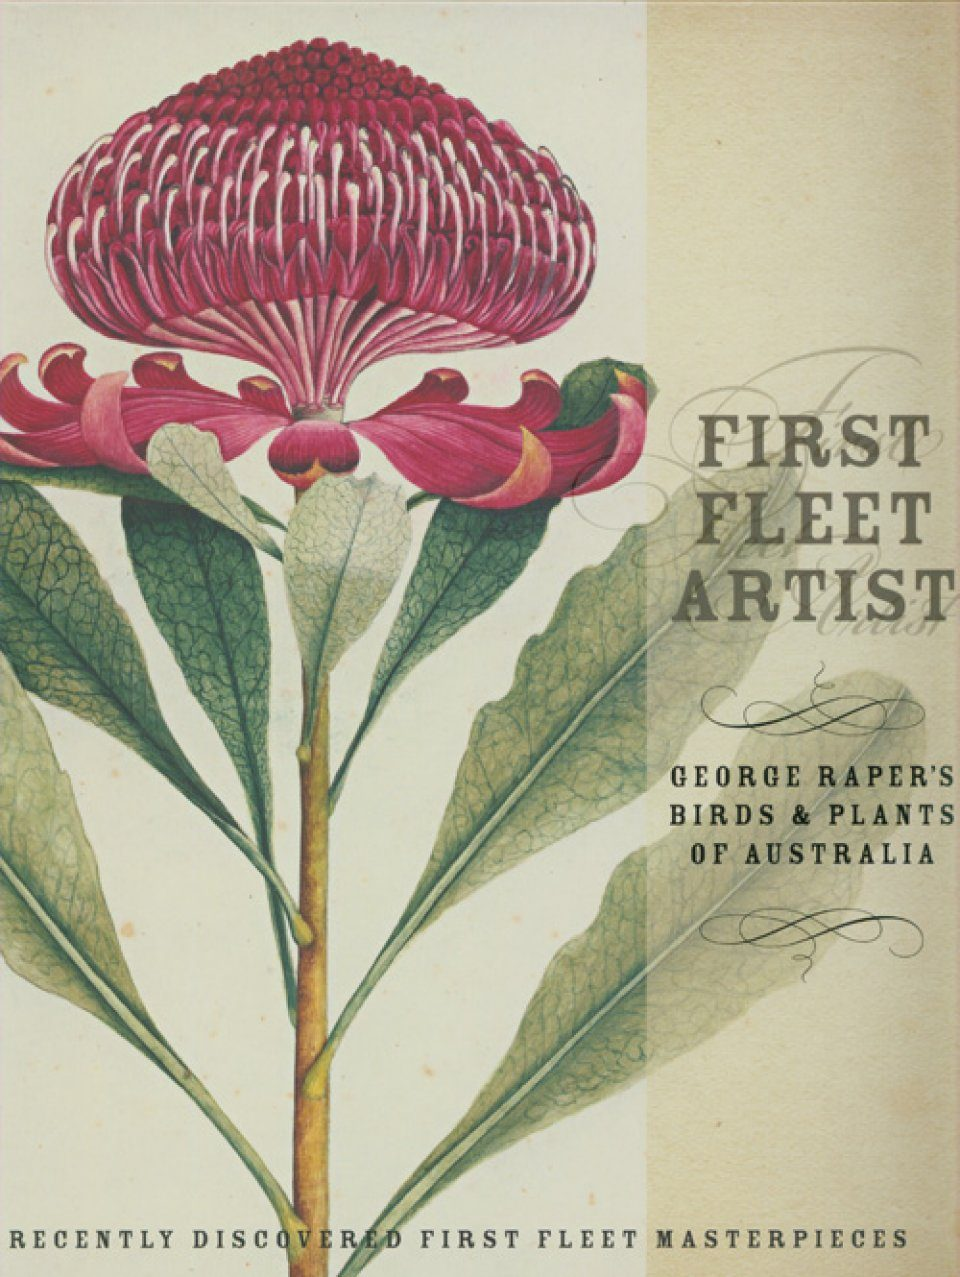 First Fleet Artist: George Raper's Birds and Plants of Australia